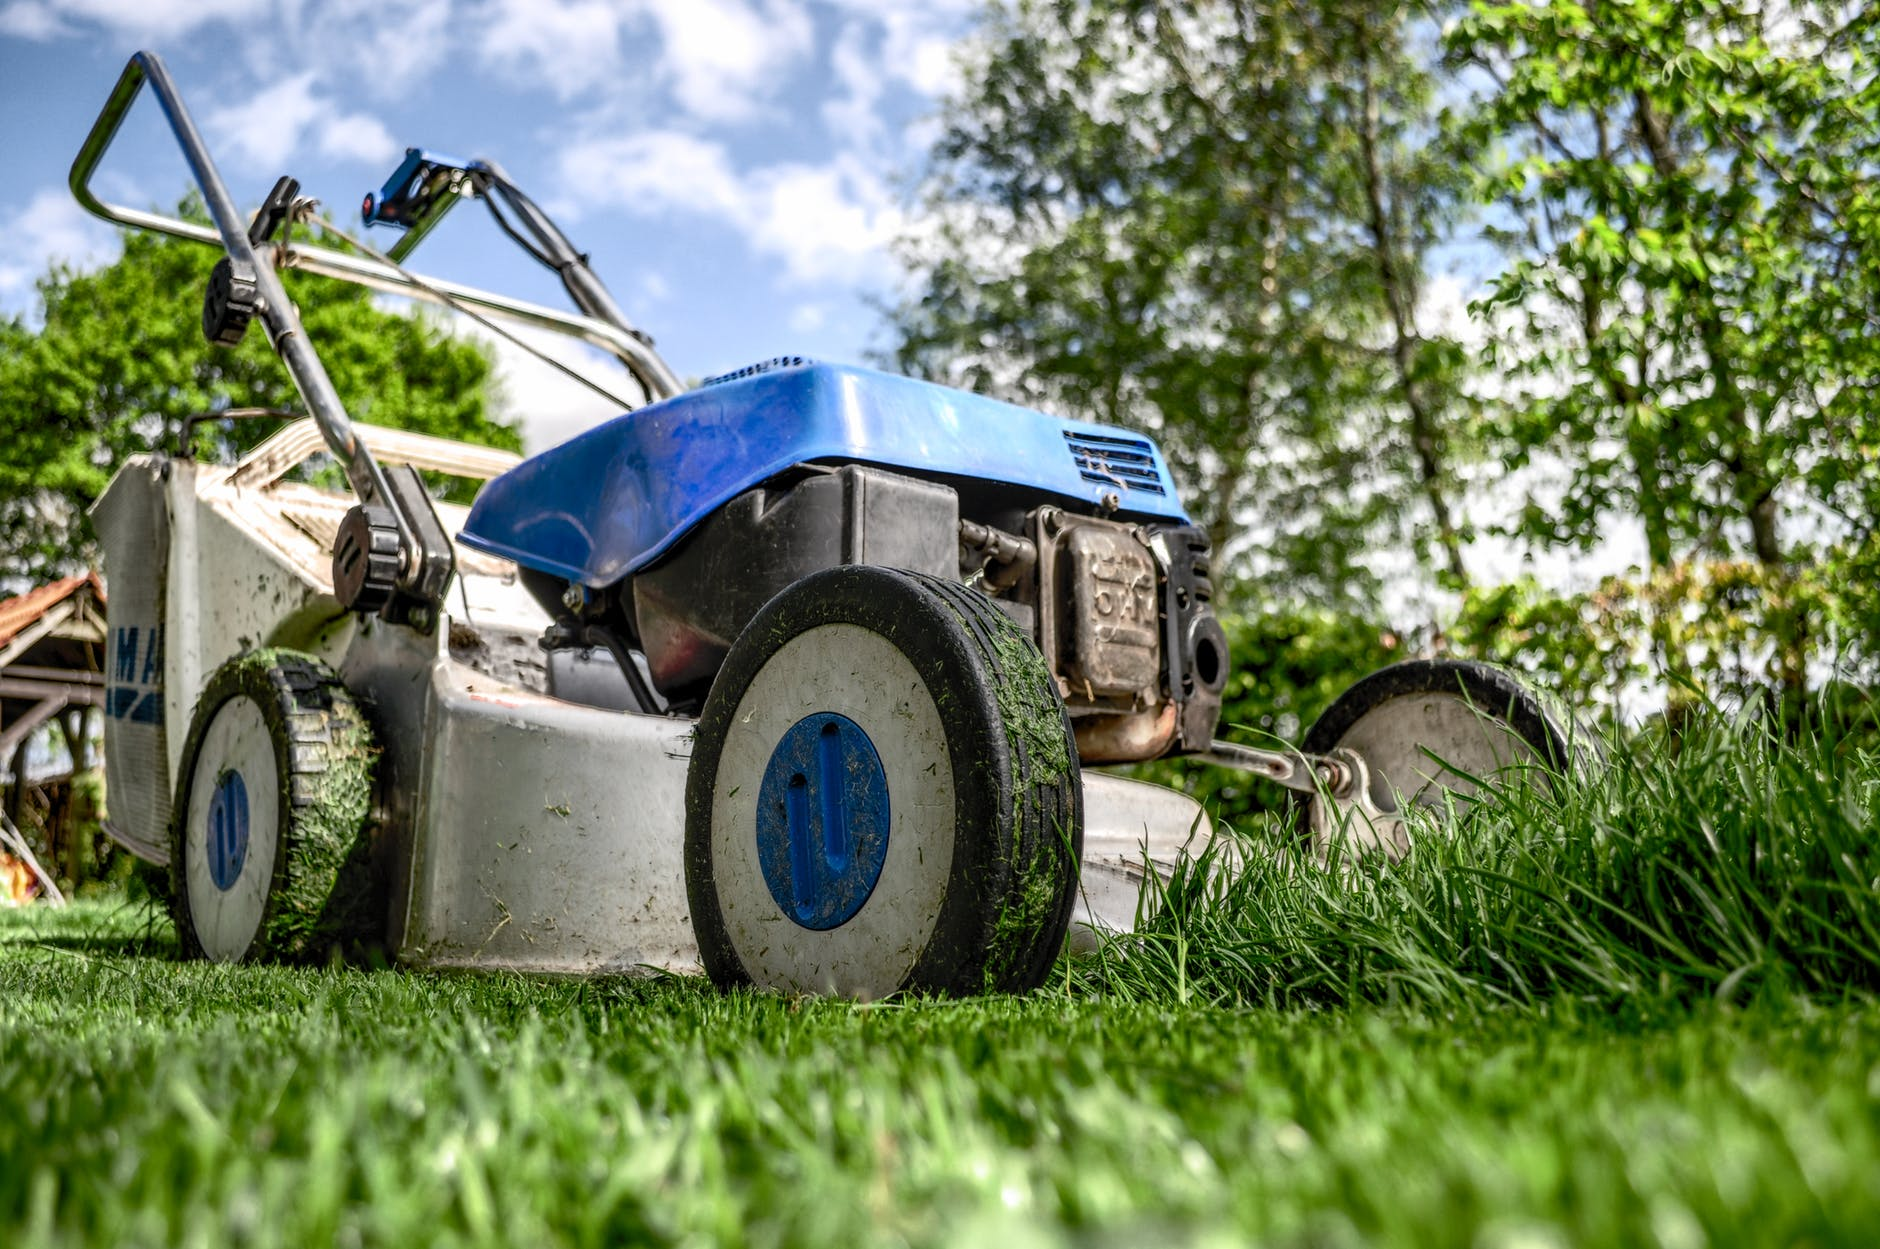 Using compact wood chippers for golf course maintenance